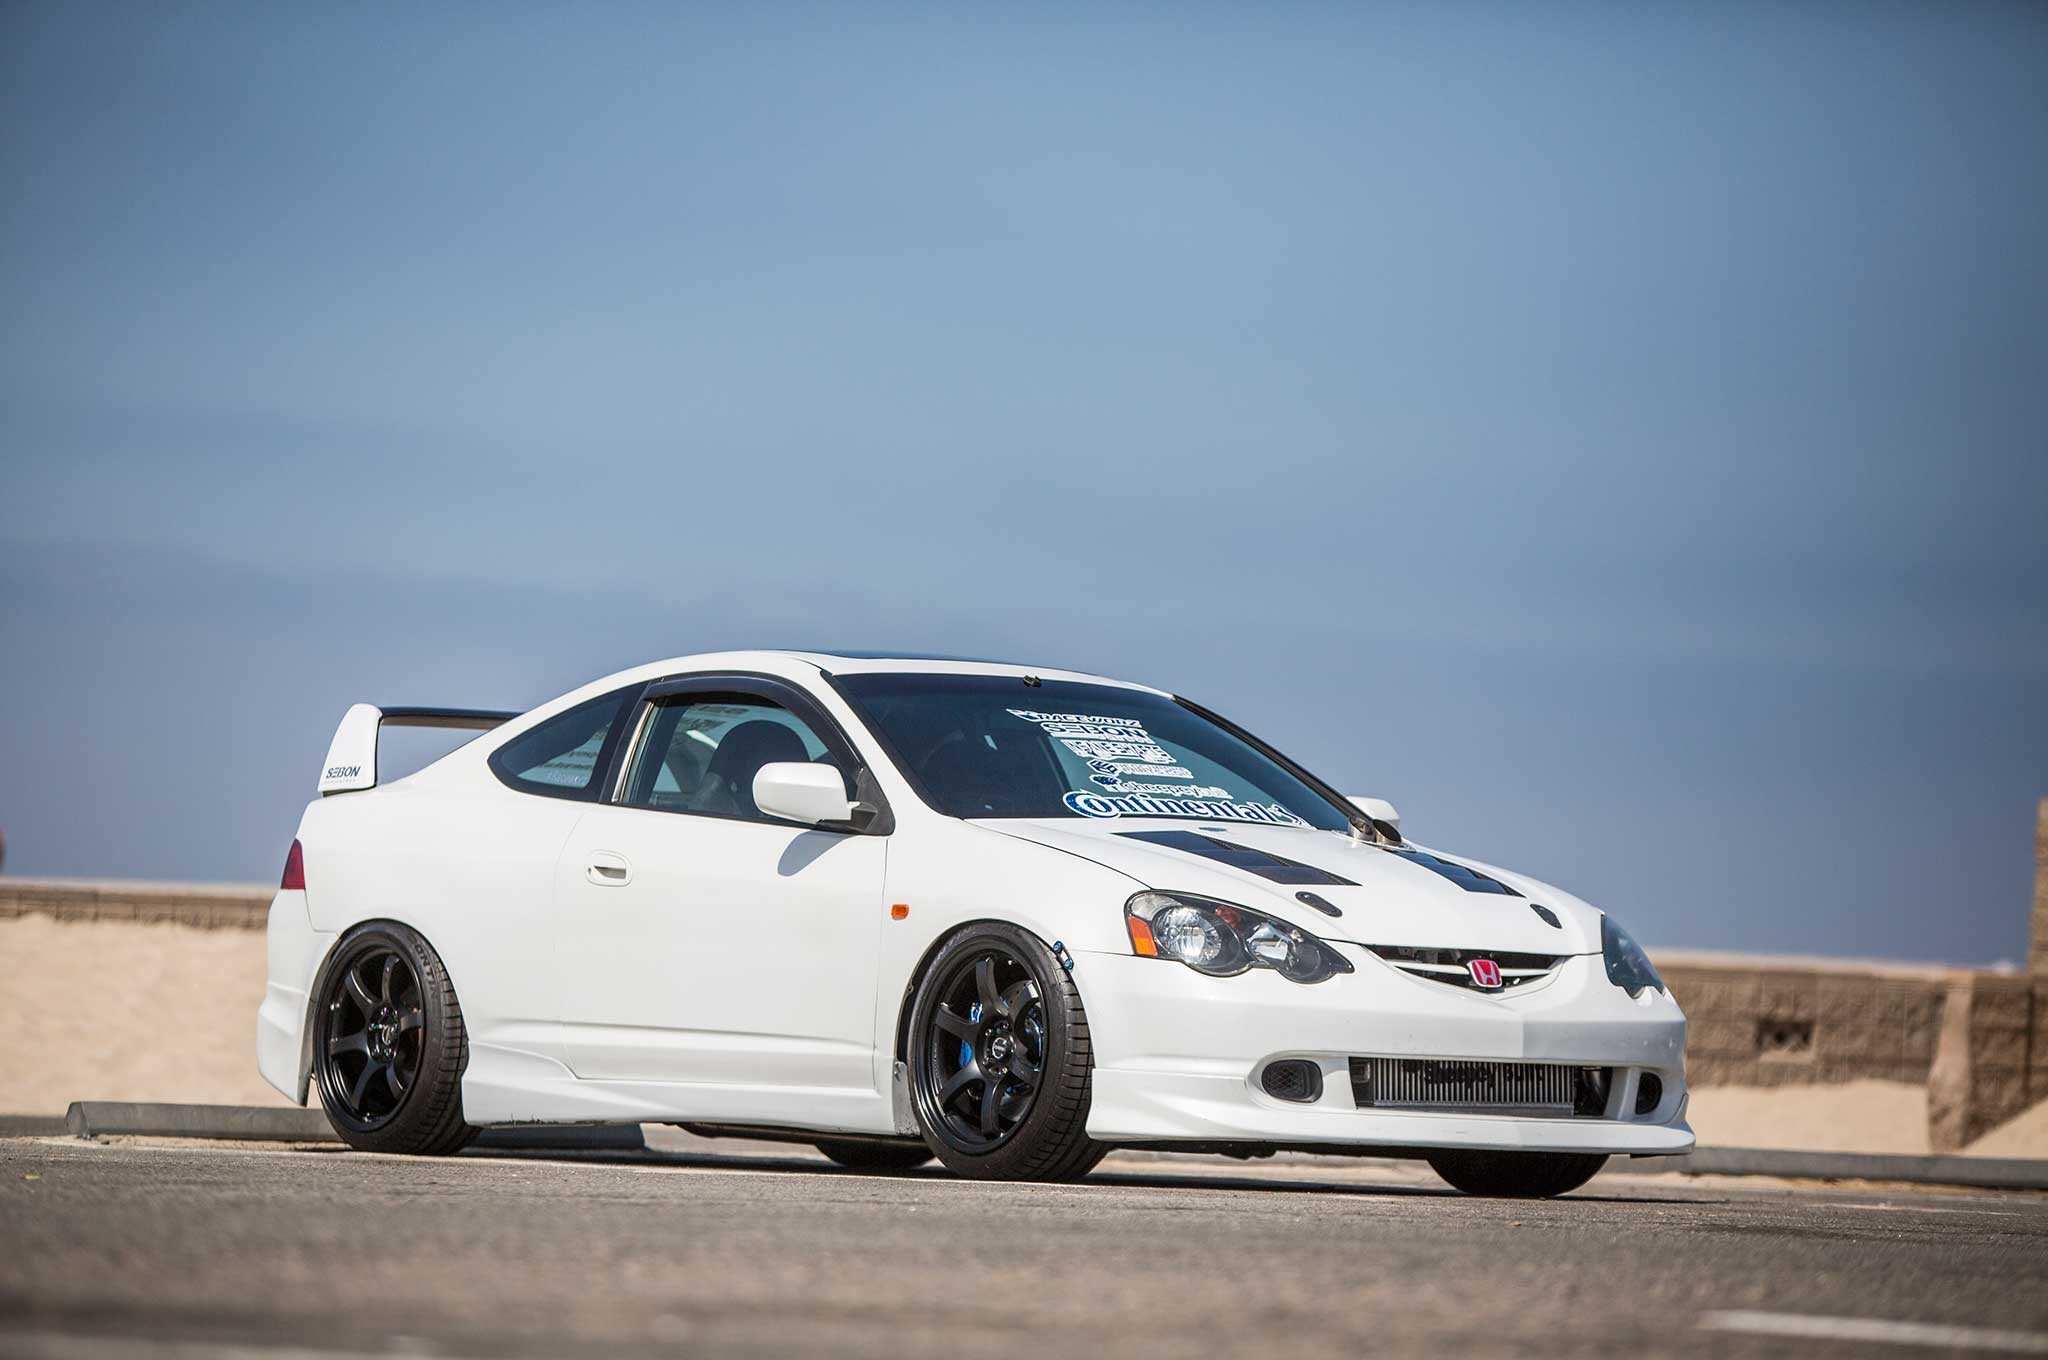 2002 Acura RSX Type-S - Rookie Move on